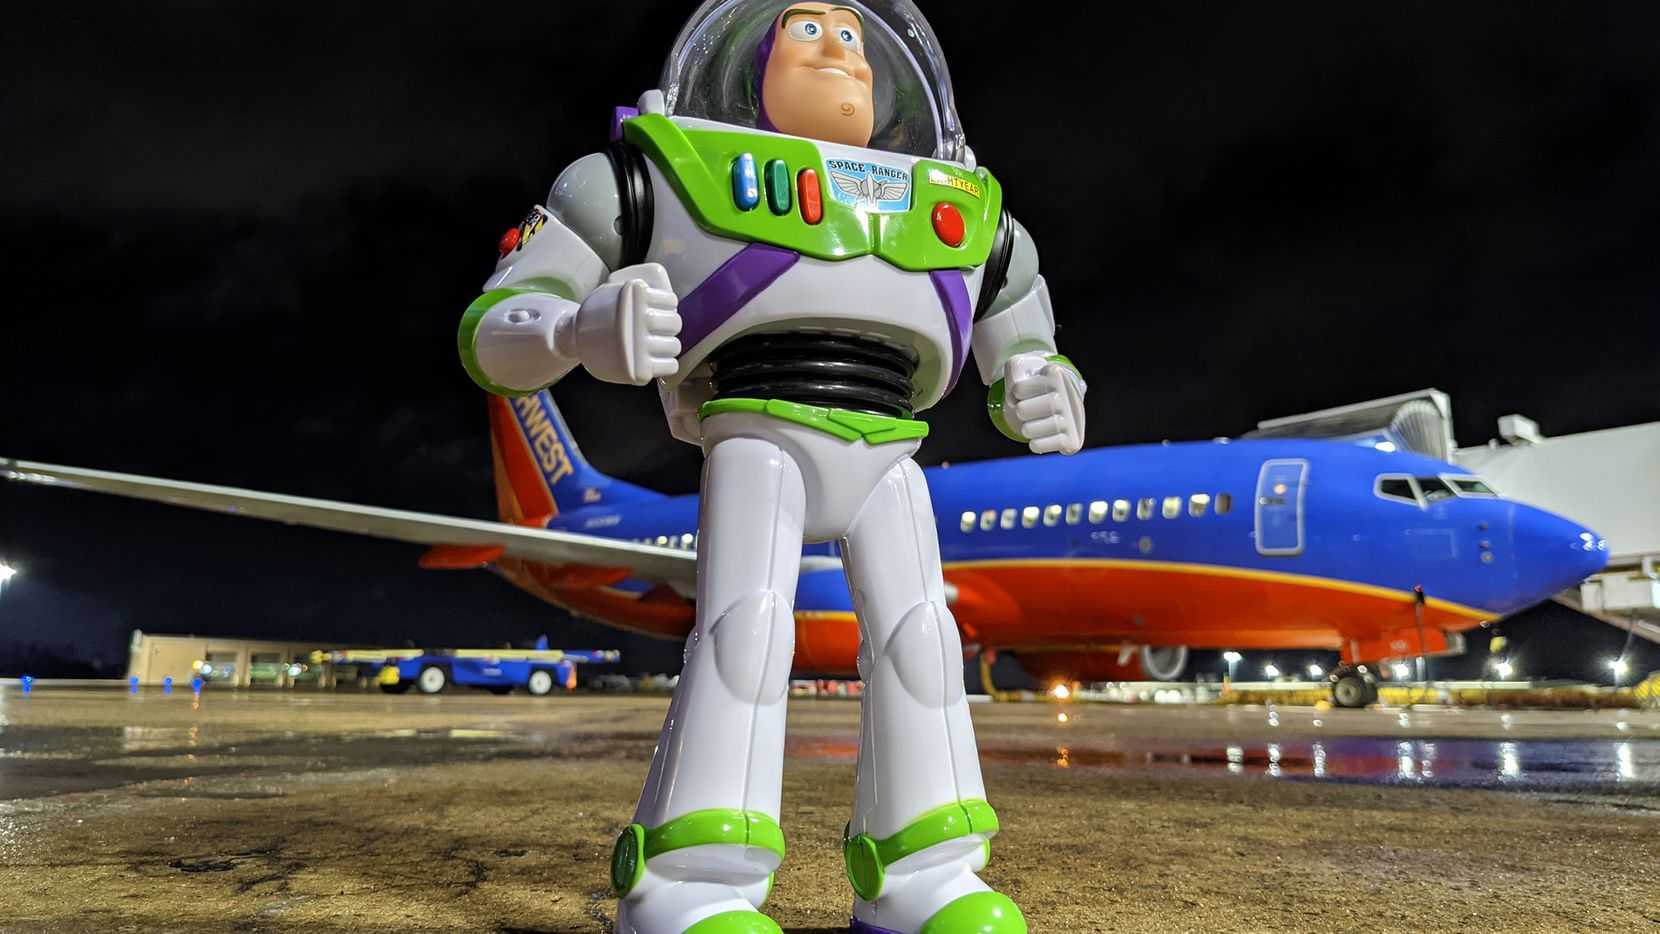 A Buzz Lightyear action figure that Southwest Airlines ramp workers found in Little Rock, Ark. They found the toy's owner, Hagen Davis, and returned it to him with pictures of Buzz at the airport and a handwritten message from the space ranger.